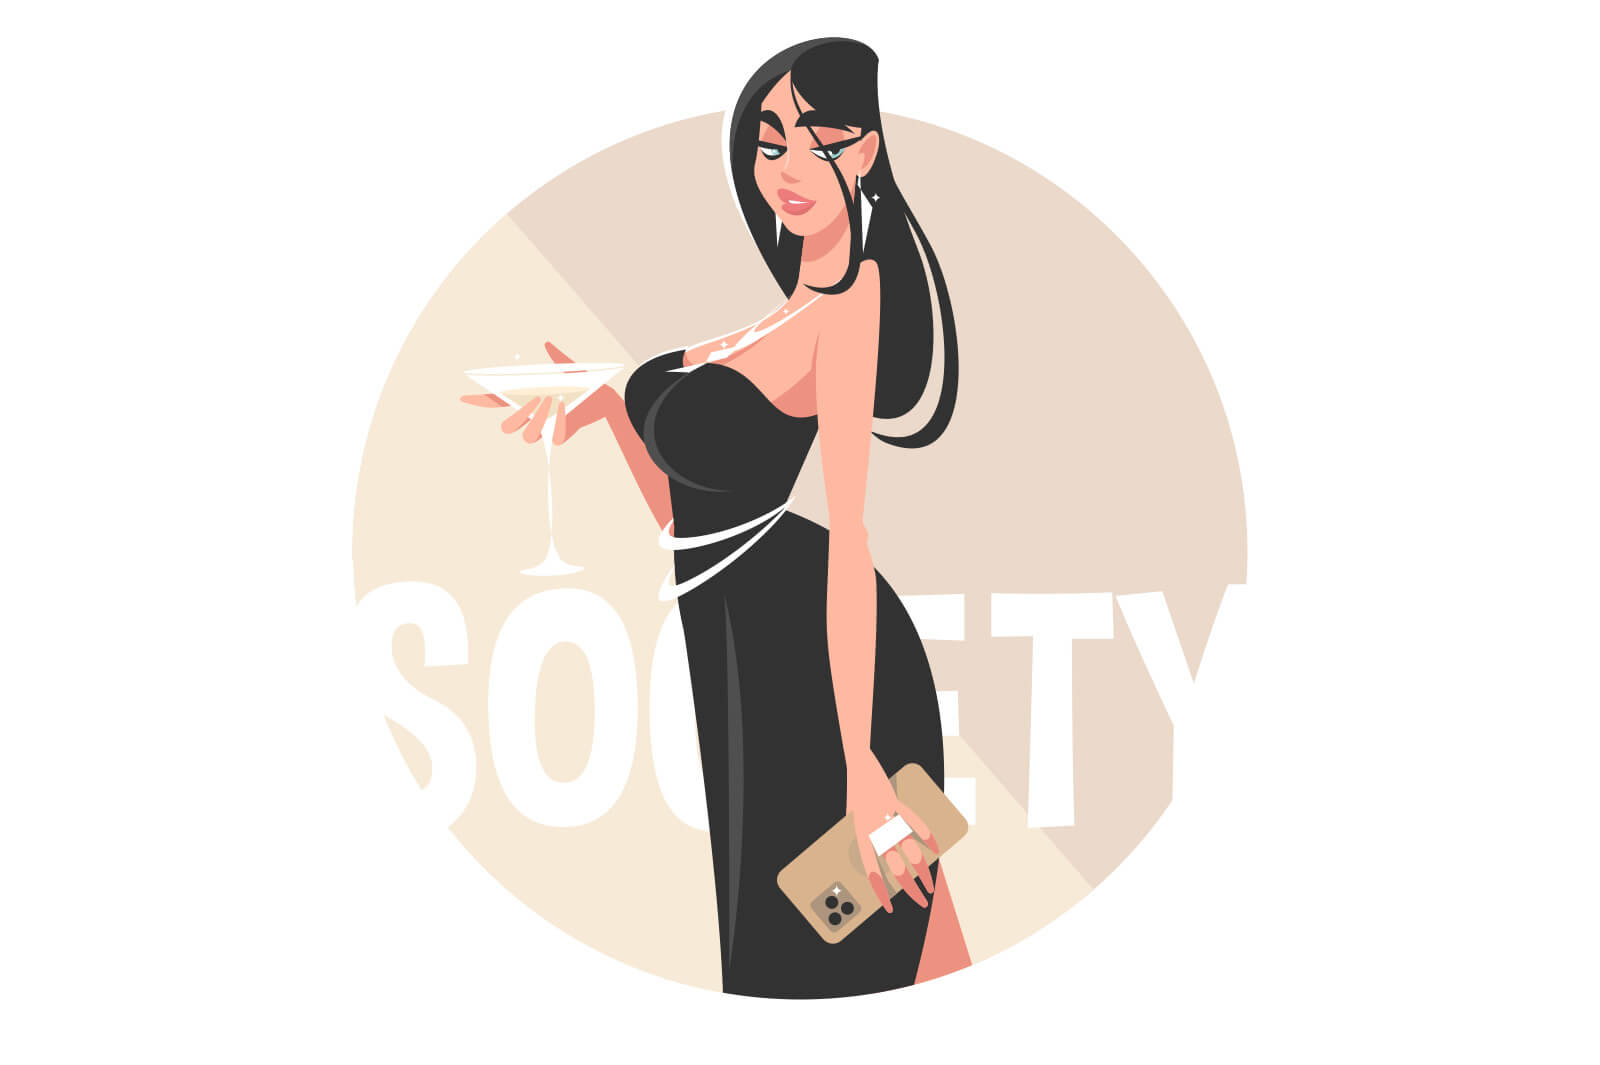 Girl in evening dress vector illustration. Stylish woman wearing black dress holding alcoholic drink flat style. Party and fun event concept. Isolated on white background